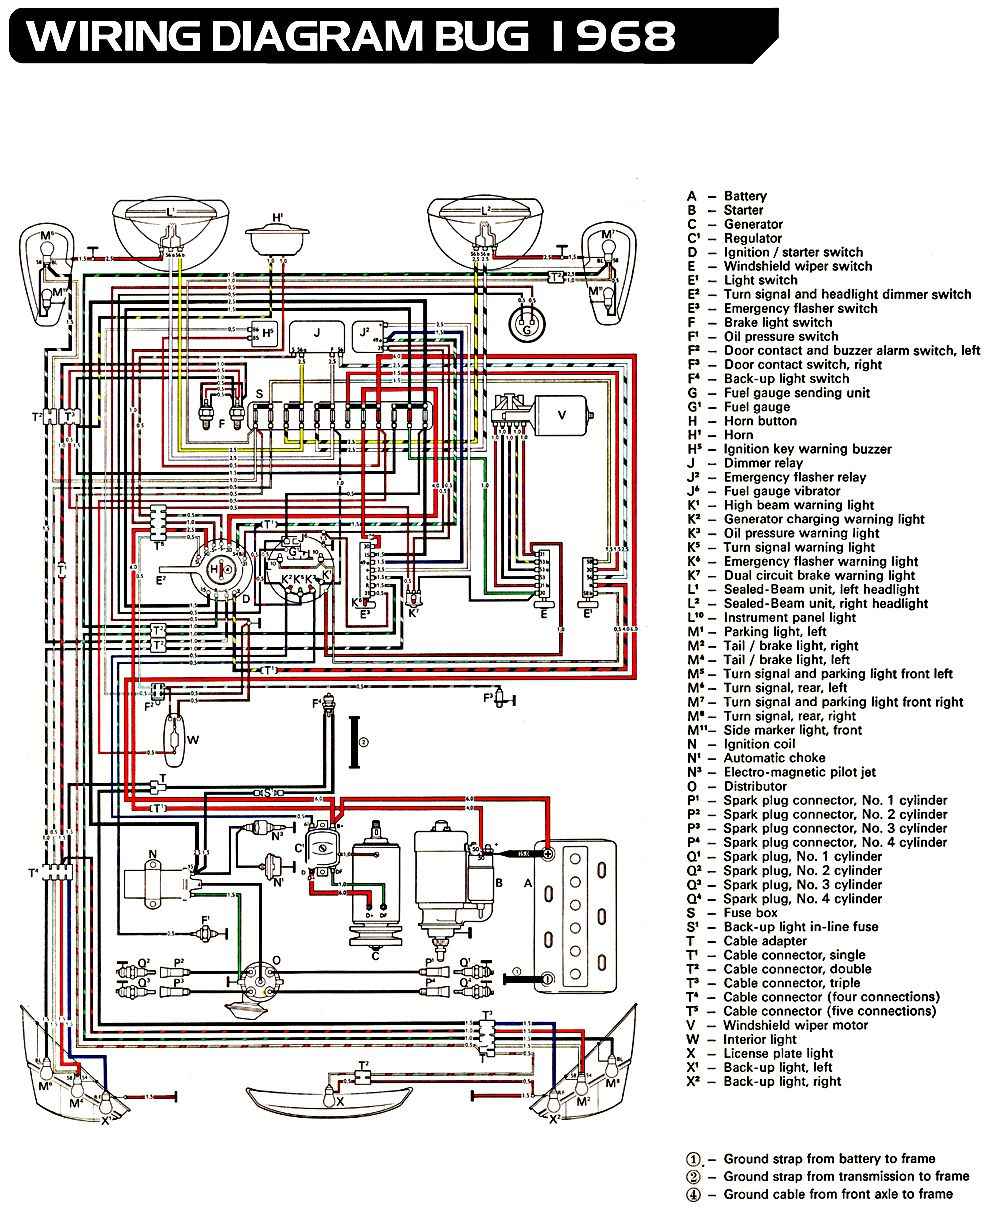 3a1908112d3826270ed5e3be362292bf vw bug ignition wiring diagram 73 vw wiring diagram free vw wiring diagrams at gsmx.co